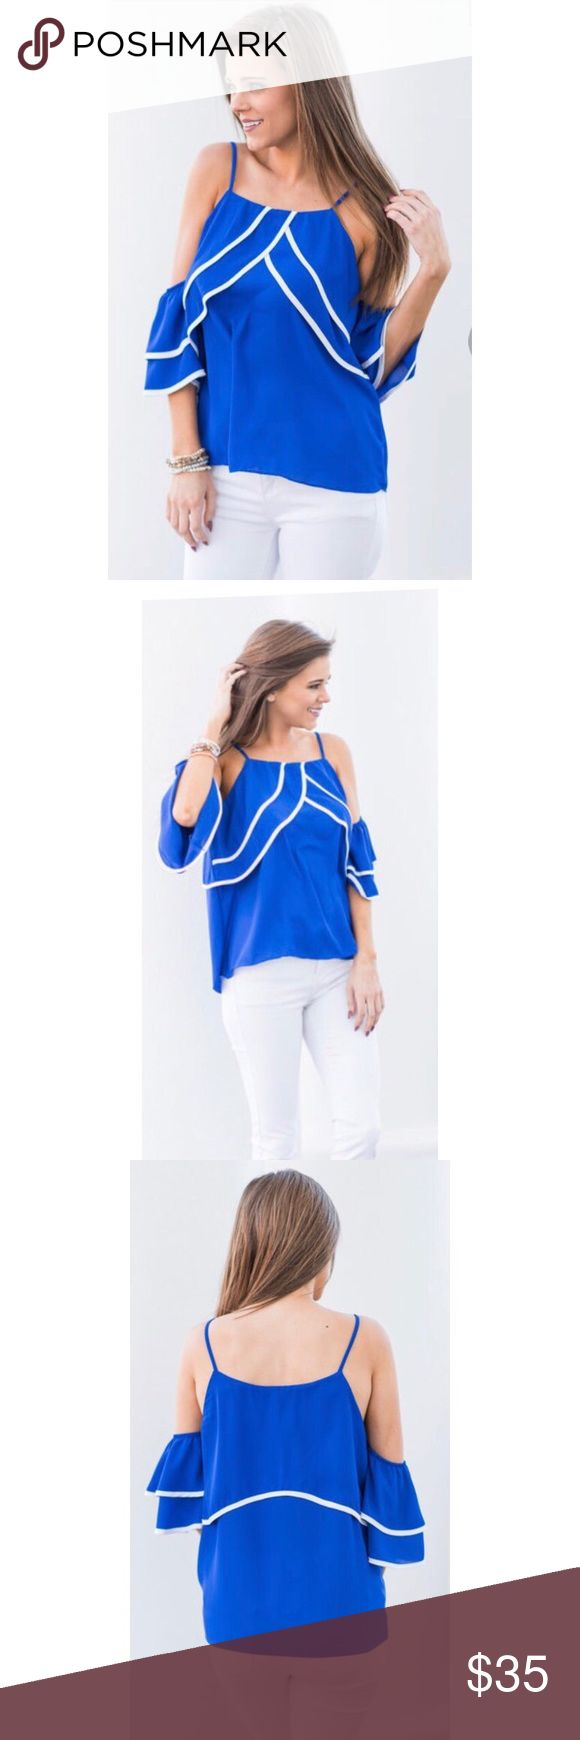 NWOT Cold Shoulder Summer Top This beachy, nautical top is so gorgeous 🌊🌊🌊 Never worn, perfect condition. TRUE LIGHT Tops Blouses